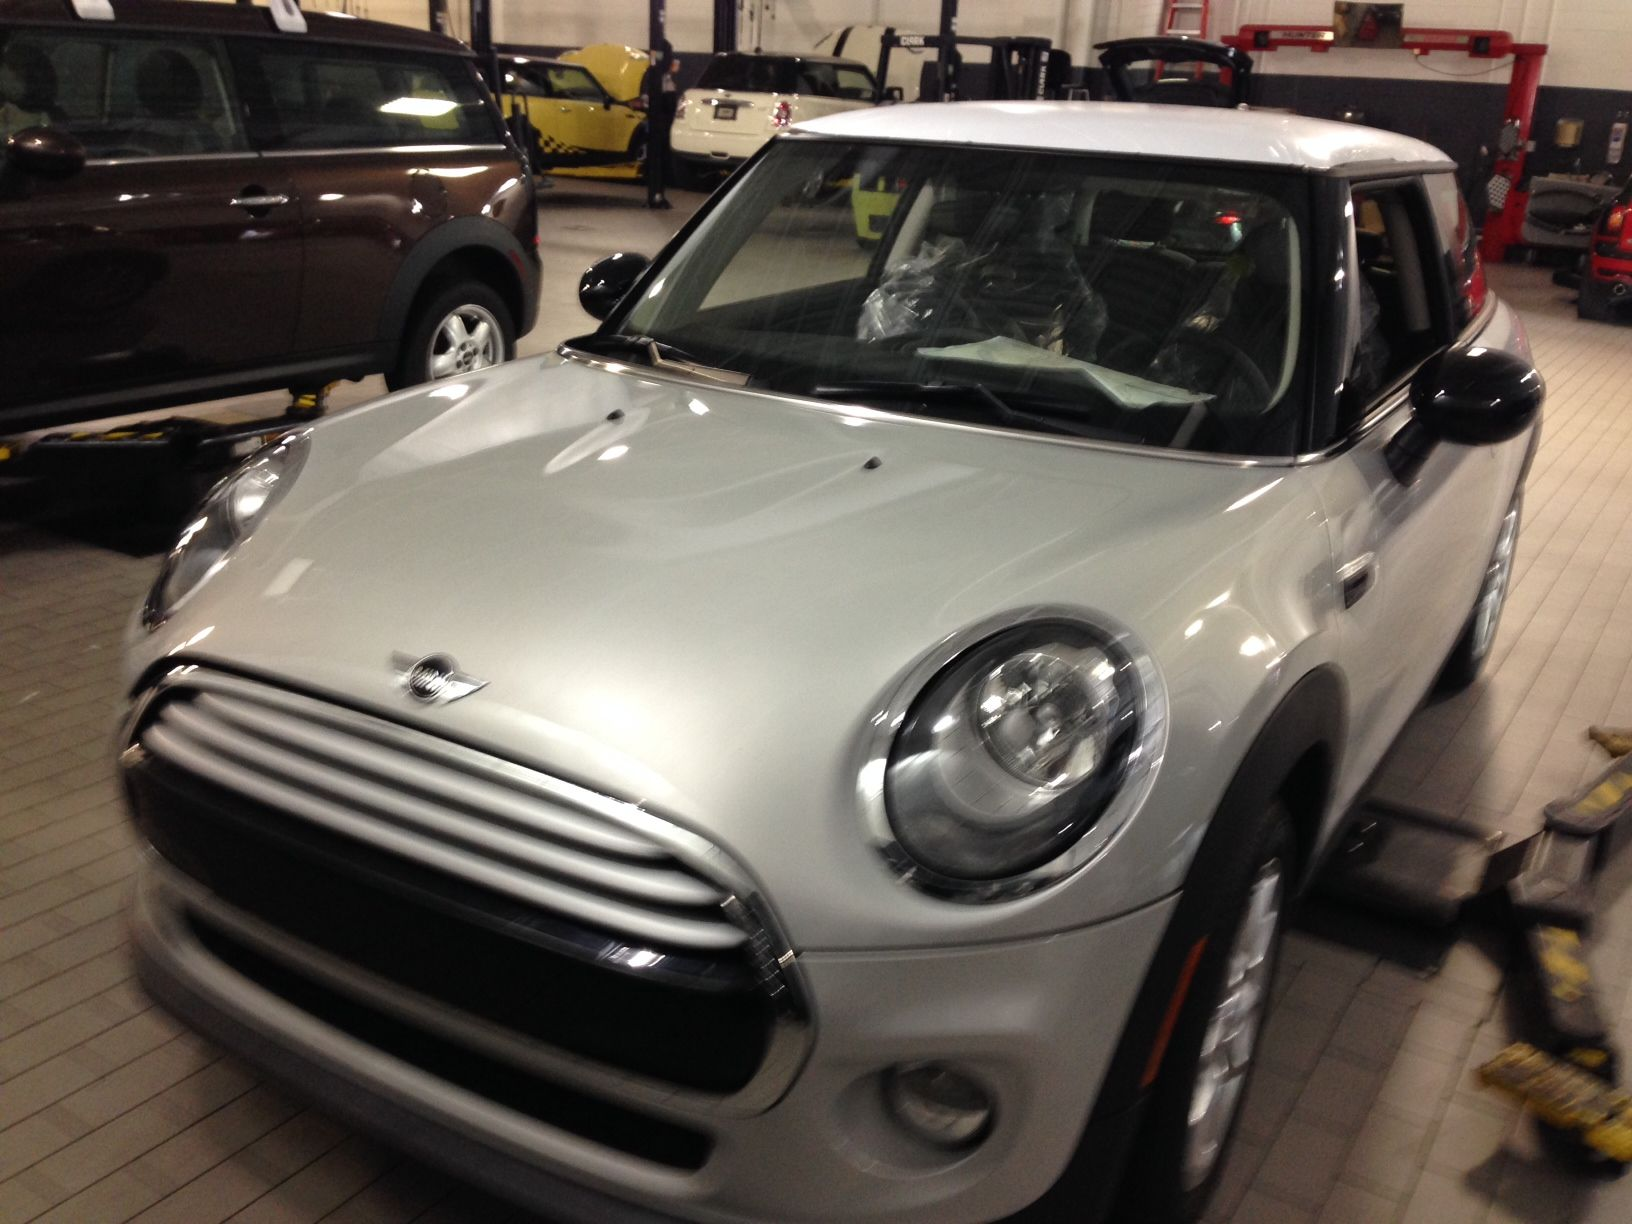 """The all-new MINI is here at Orlando MINI. Come and test drive it today! Mention """"Pinterest"""" and schedule a test drive by using the contact form on our website -> http://www.iwantamini.com/ContactUsForm #OrlandoMINI #newMINI #F56 #MINICooper #Orlando #MINI"""